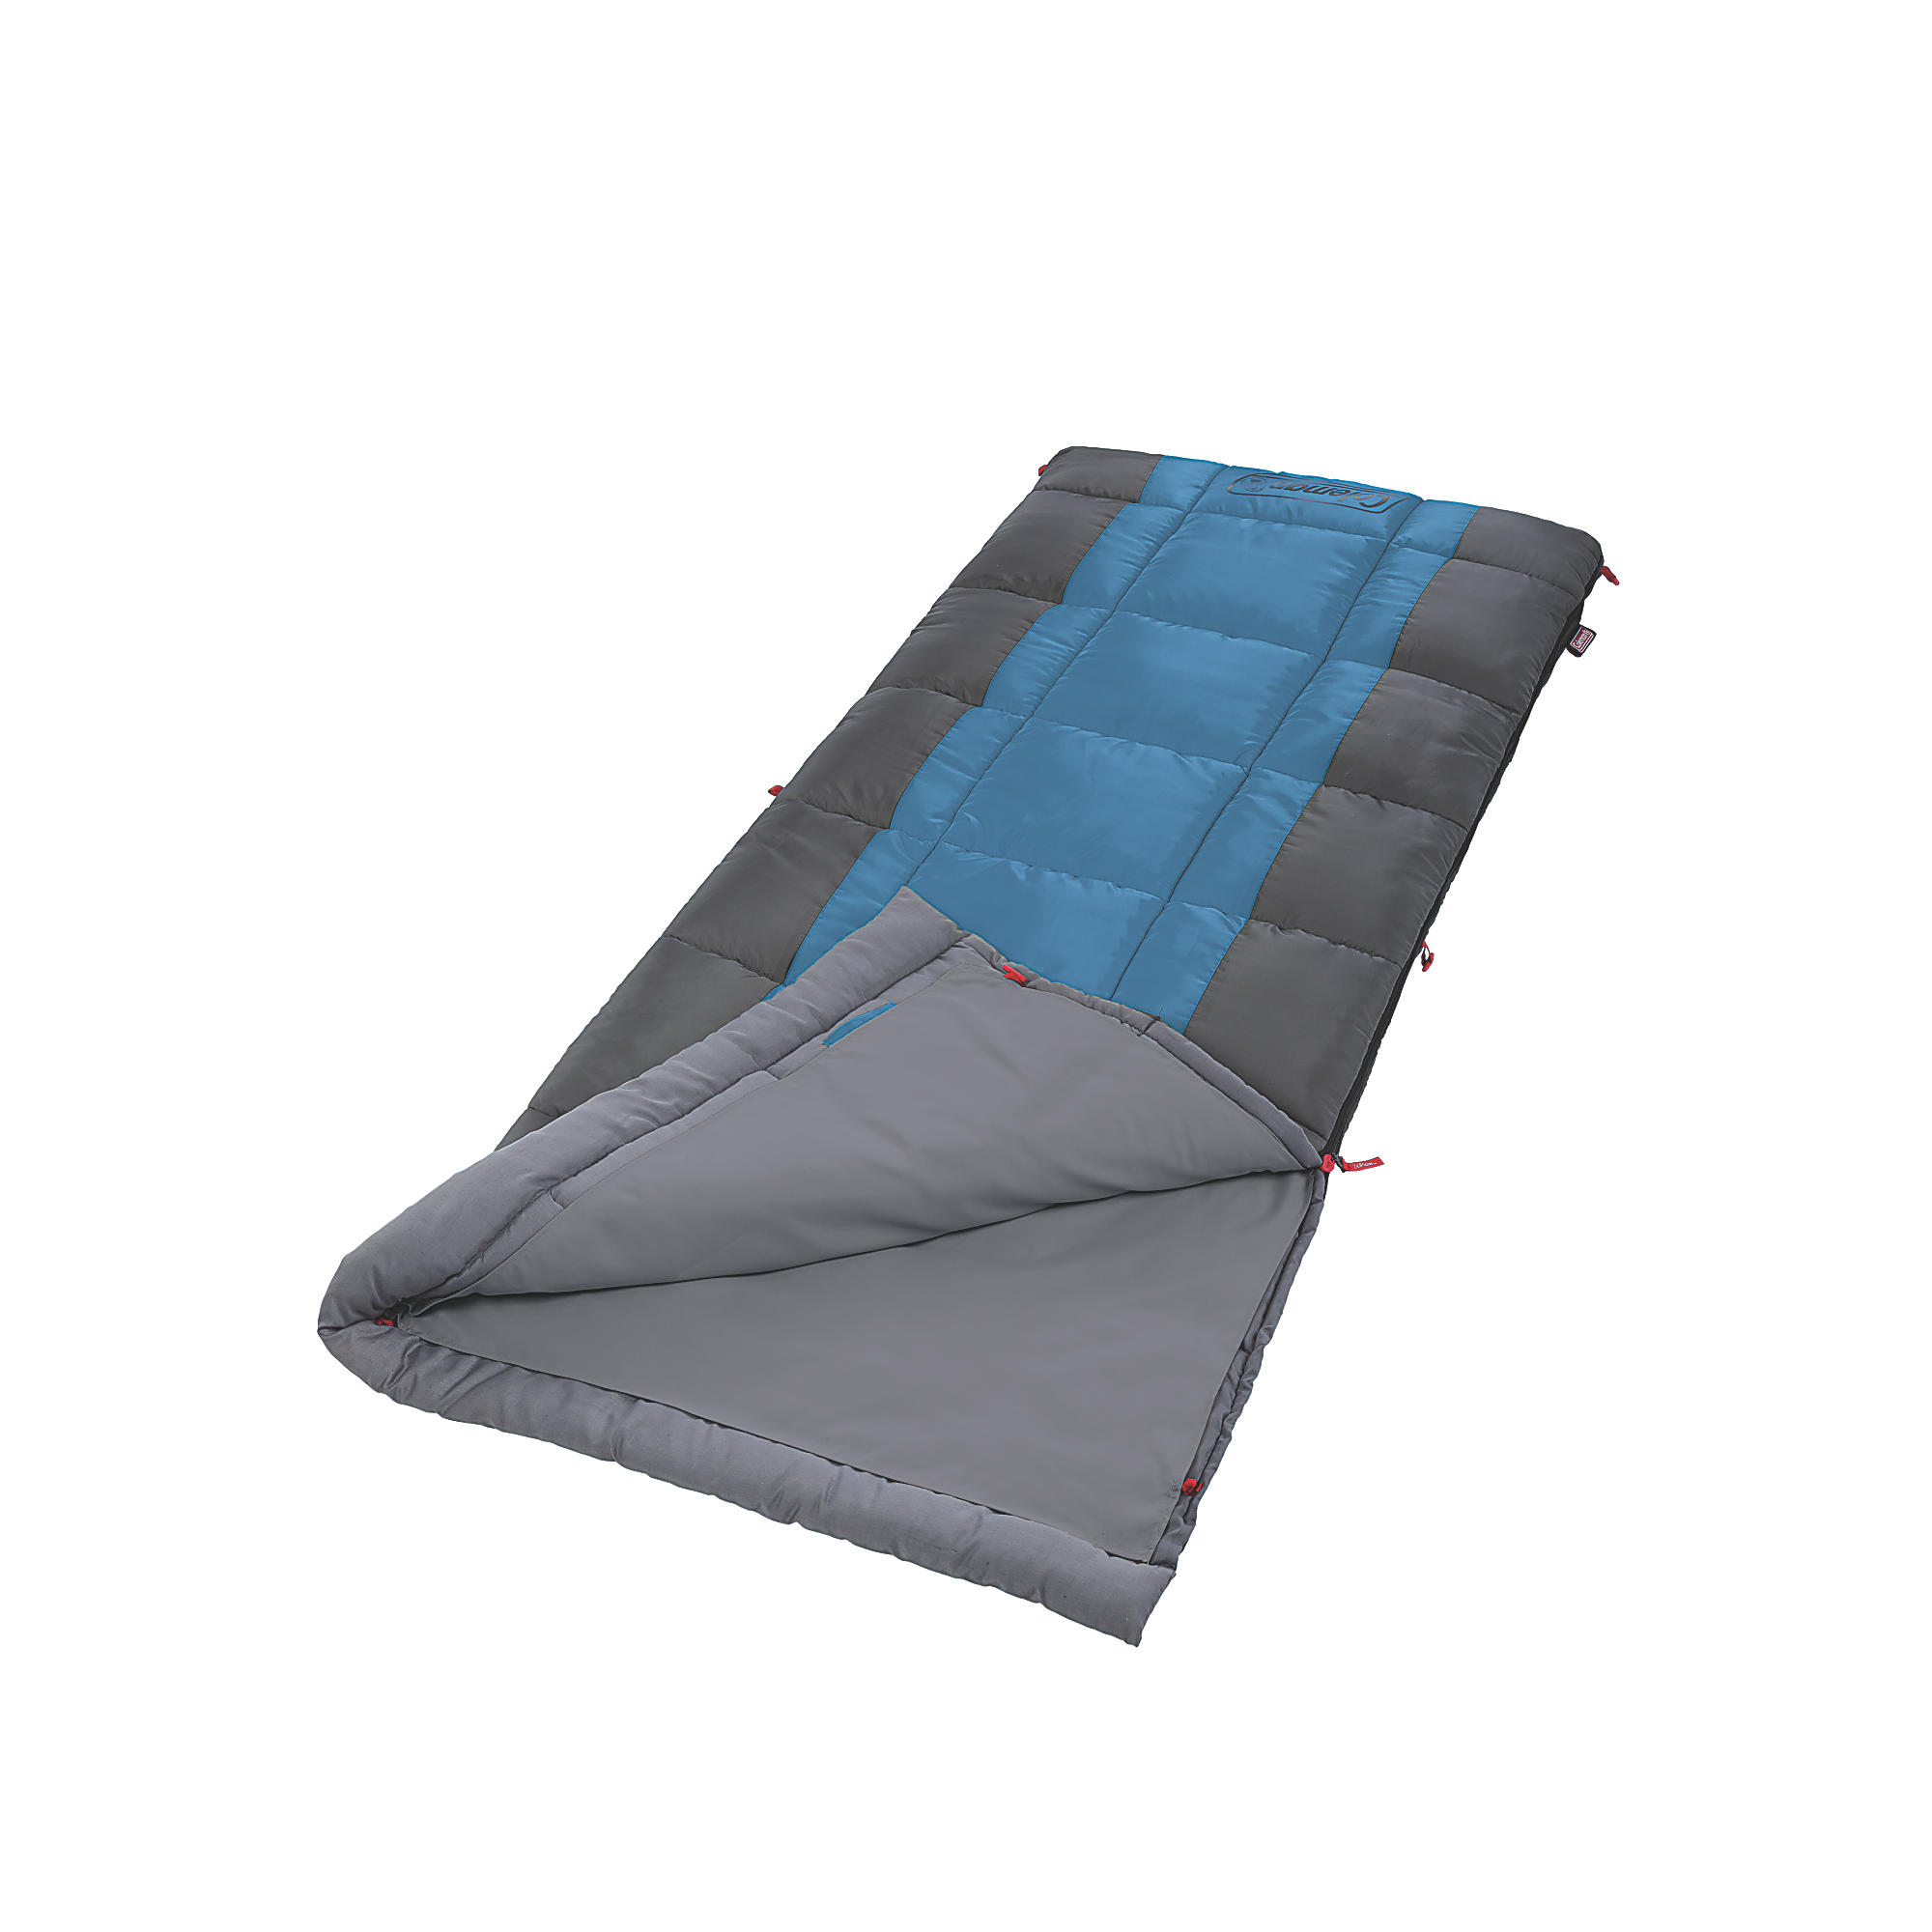 3-in-1 Sleeping Bag